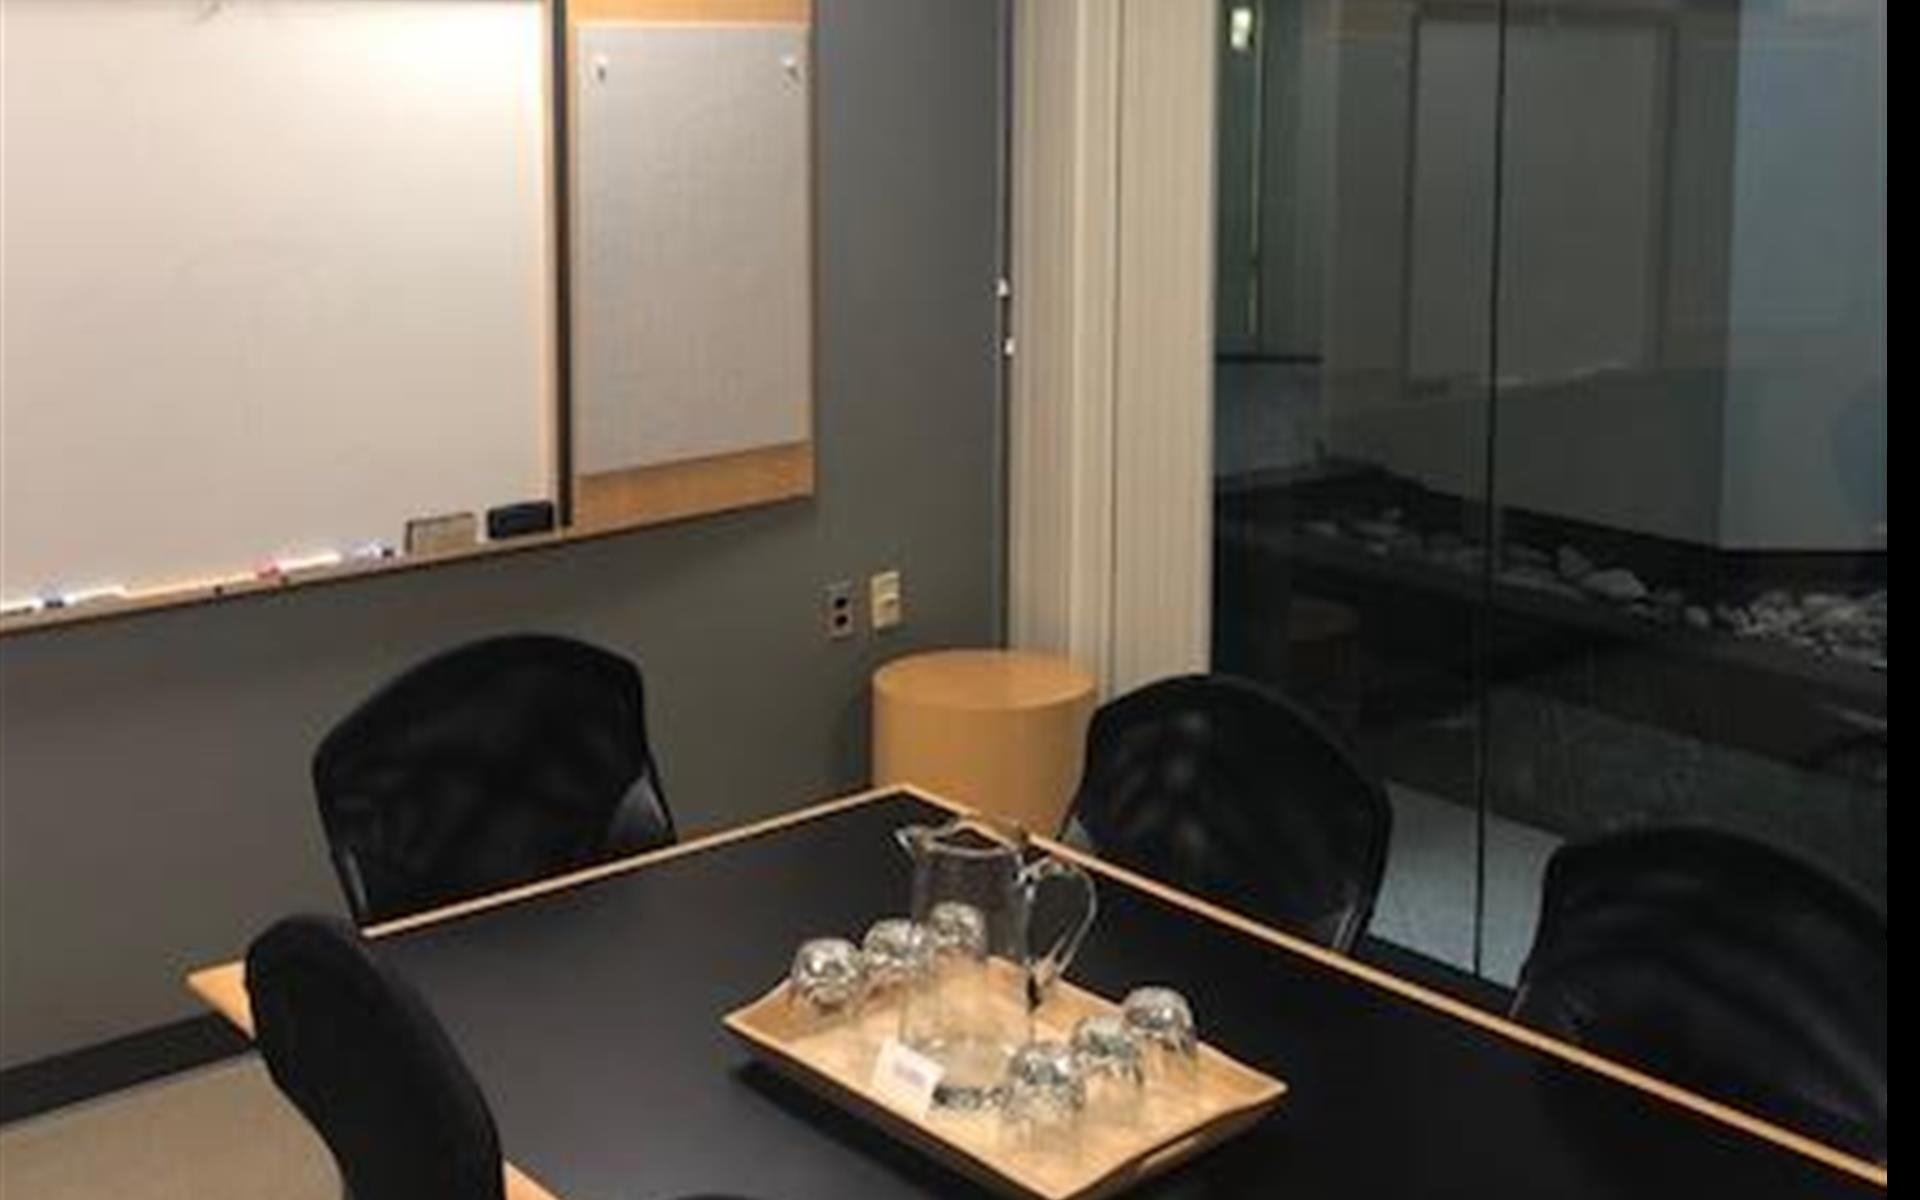 Intelligent Office 525 Rt 73 N Marlton NJ - Small conference room #2